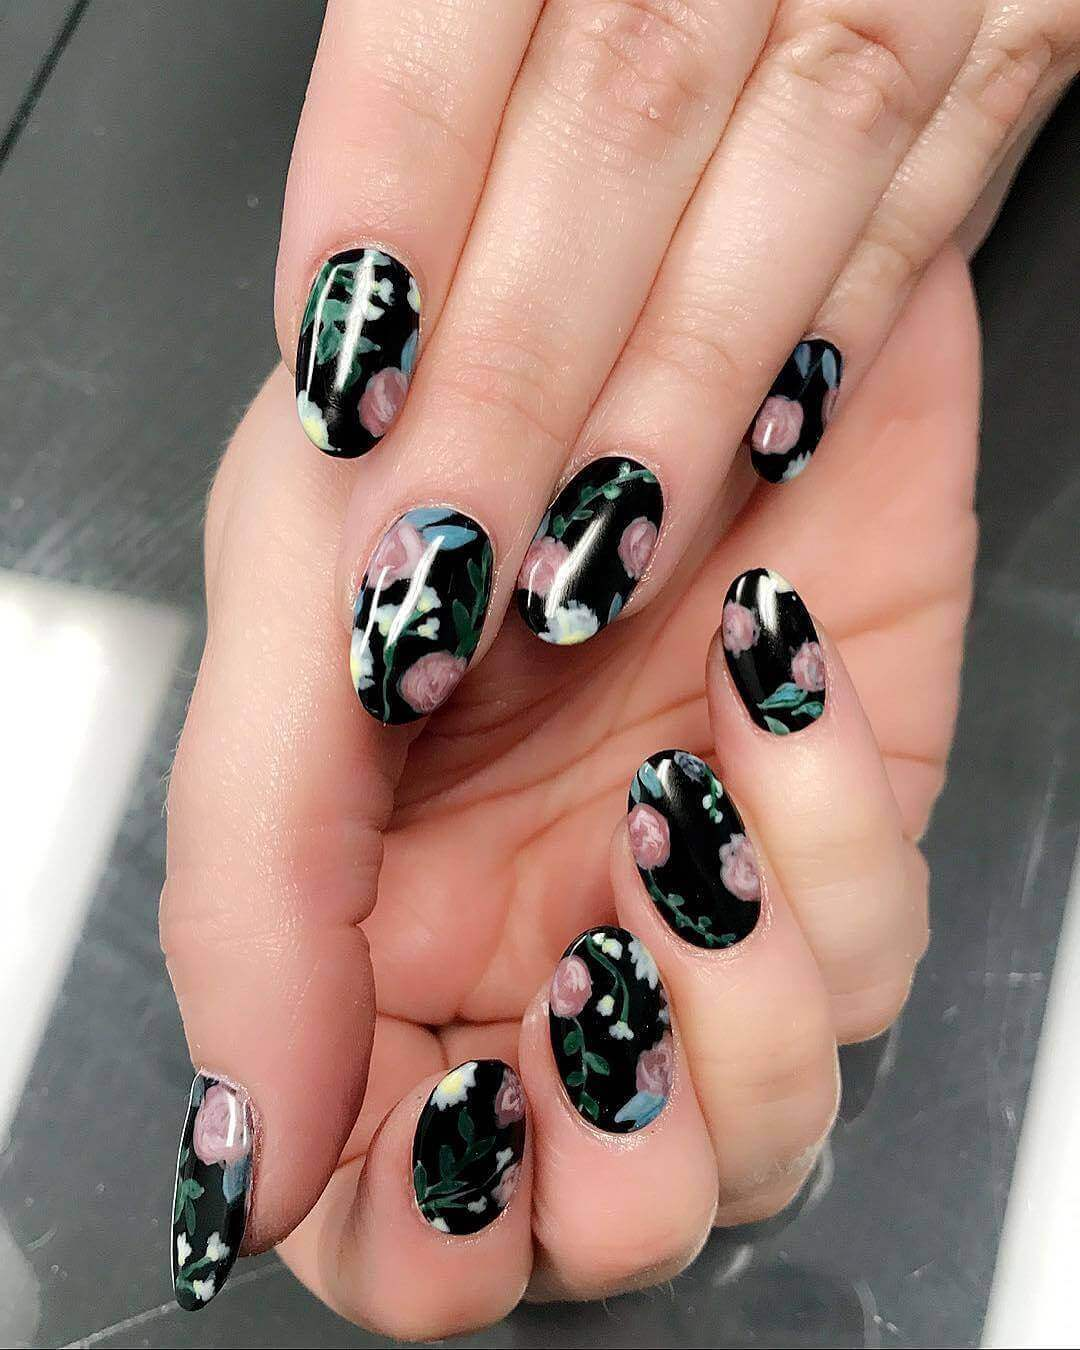 gel-nail-designs-vvpretty